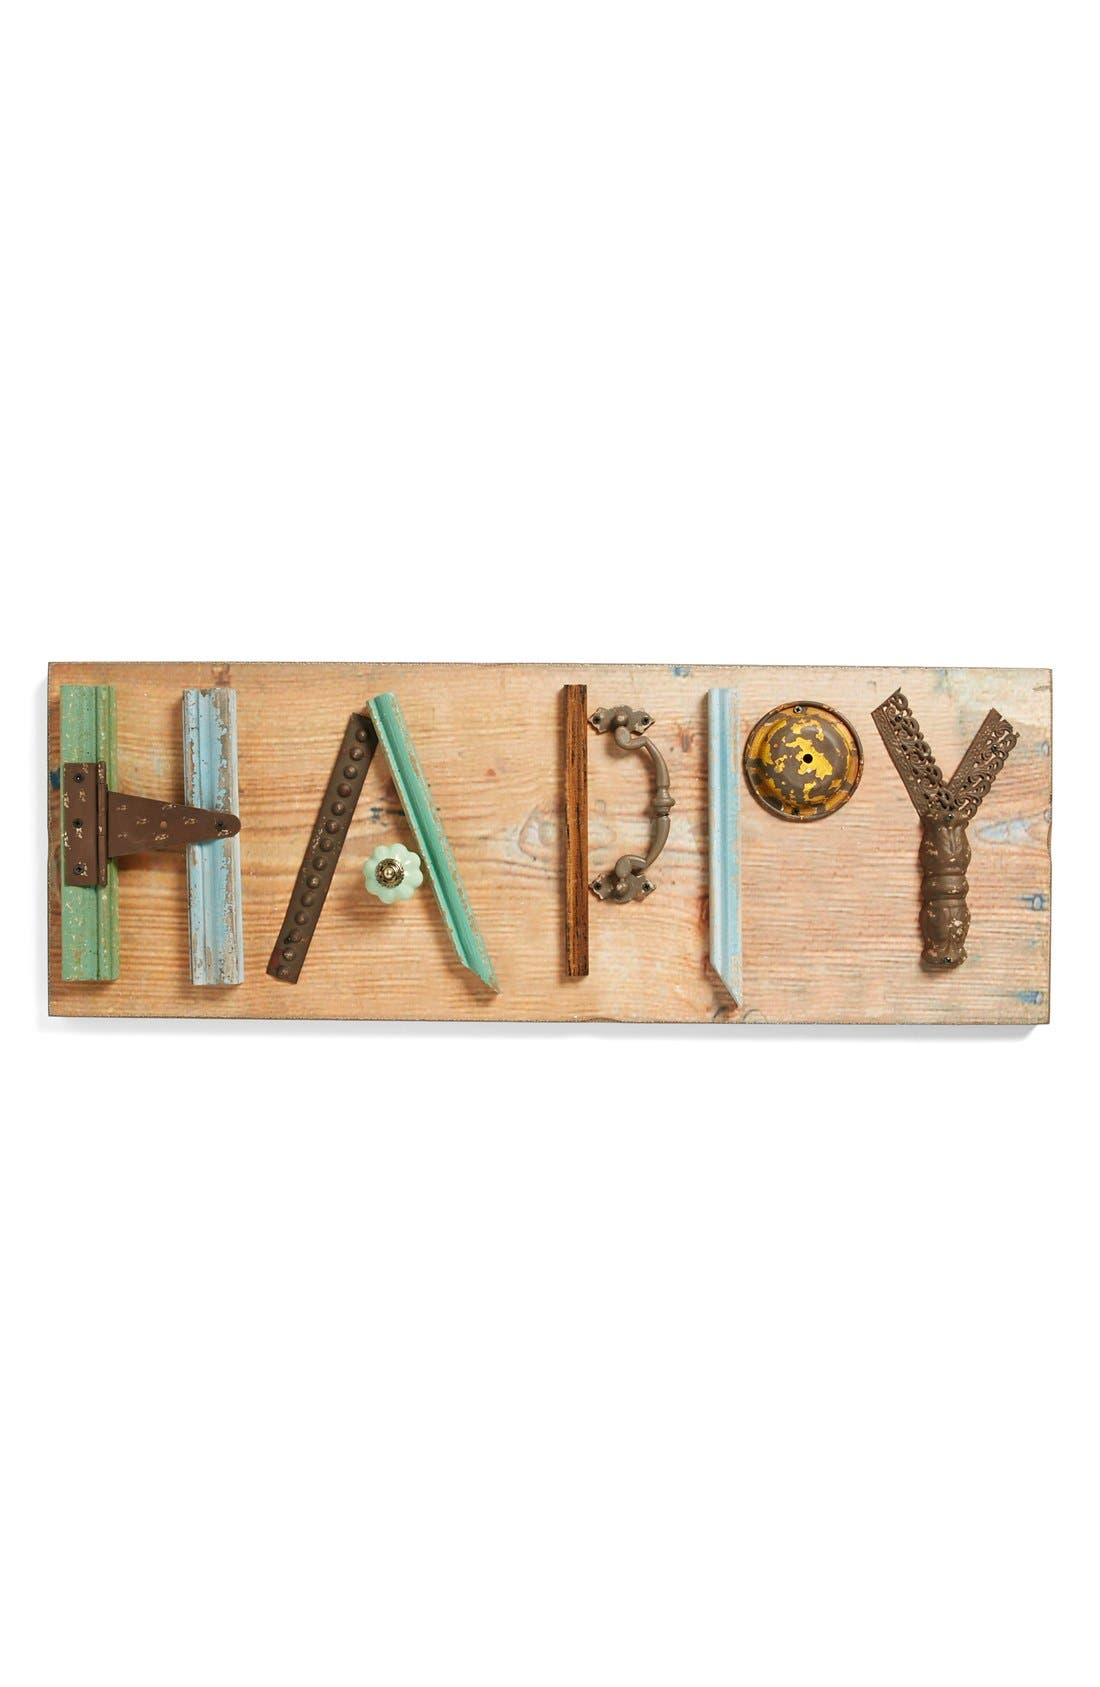 Alternate Image 1 Selected - Foreside 'Happy' Mixed Media Sign